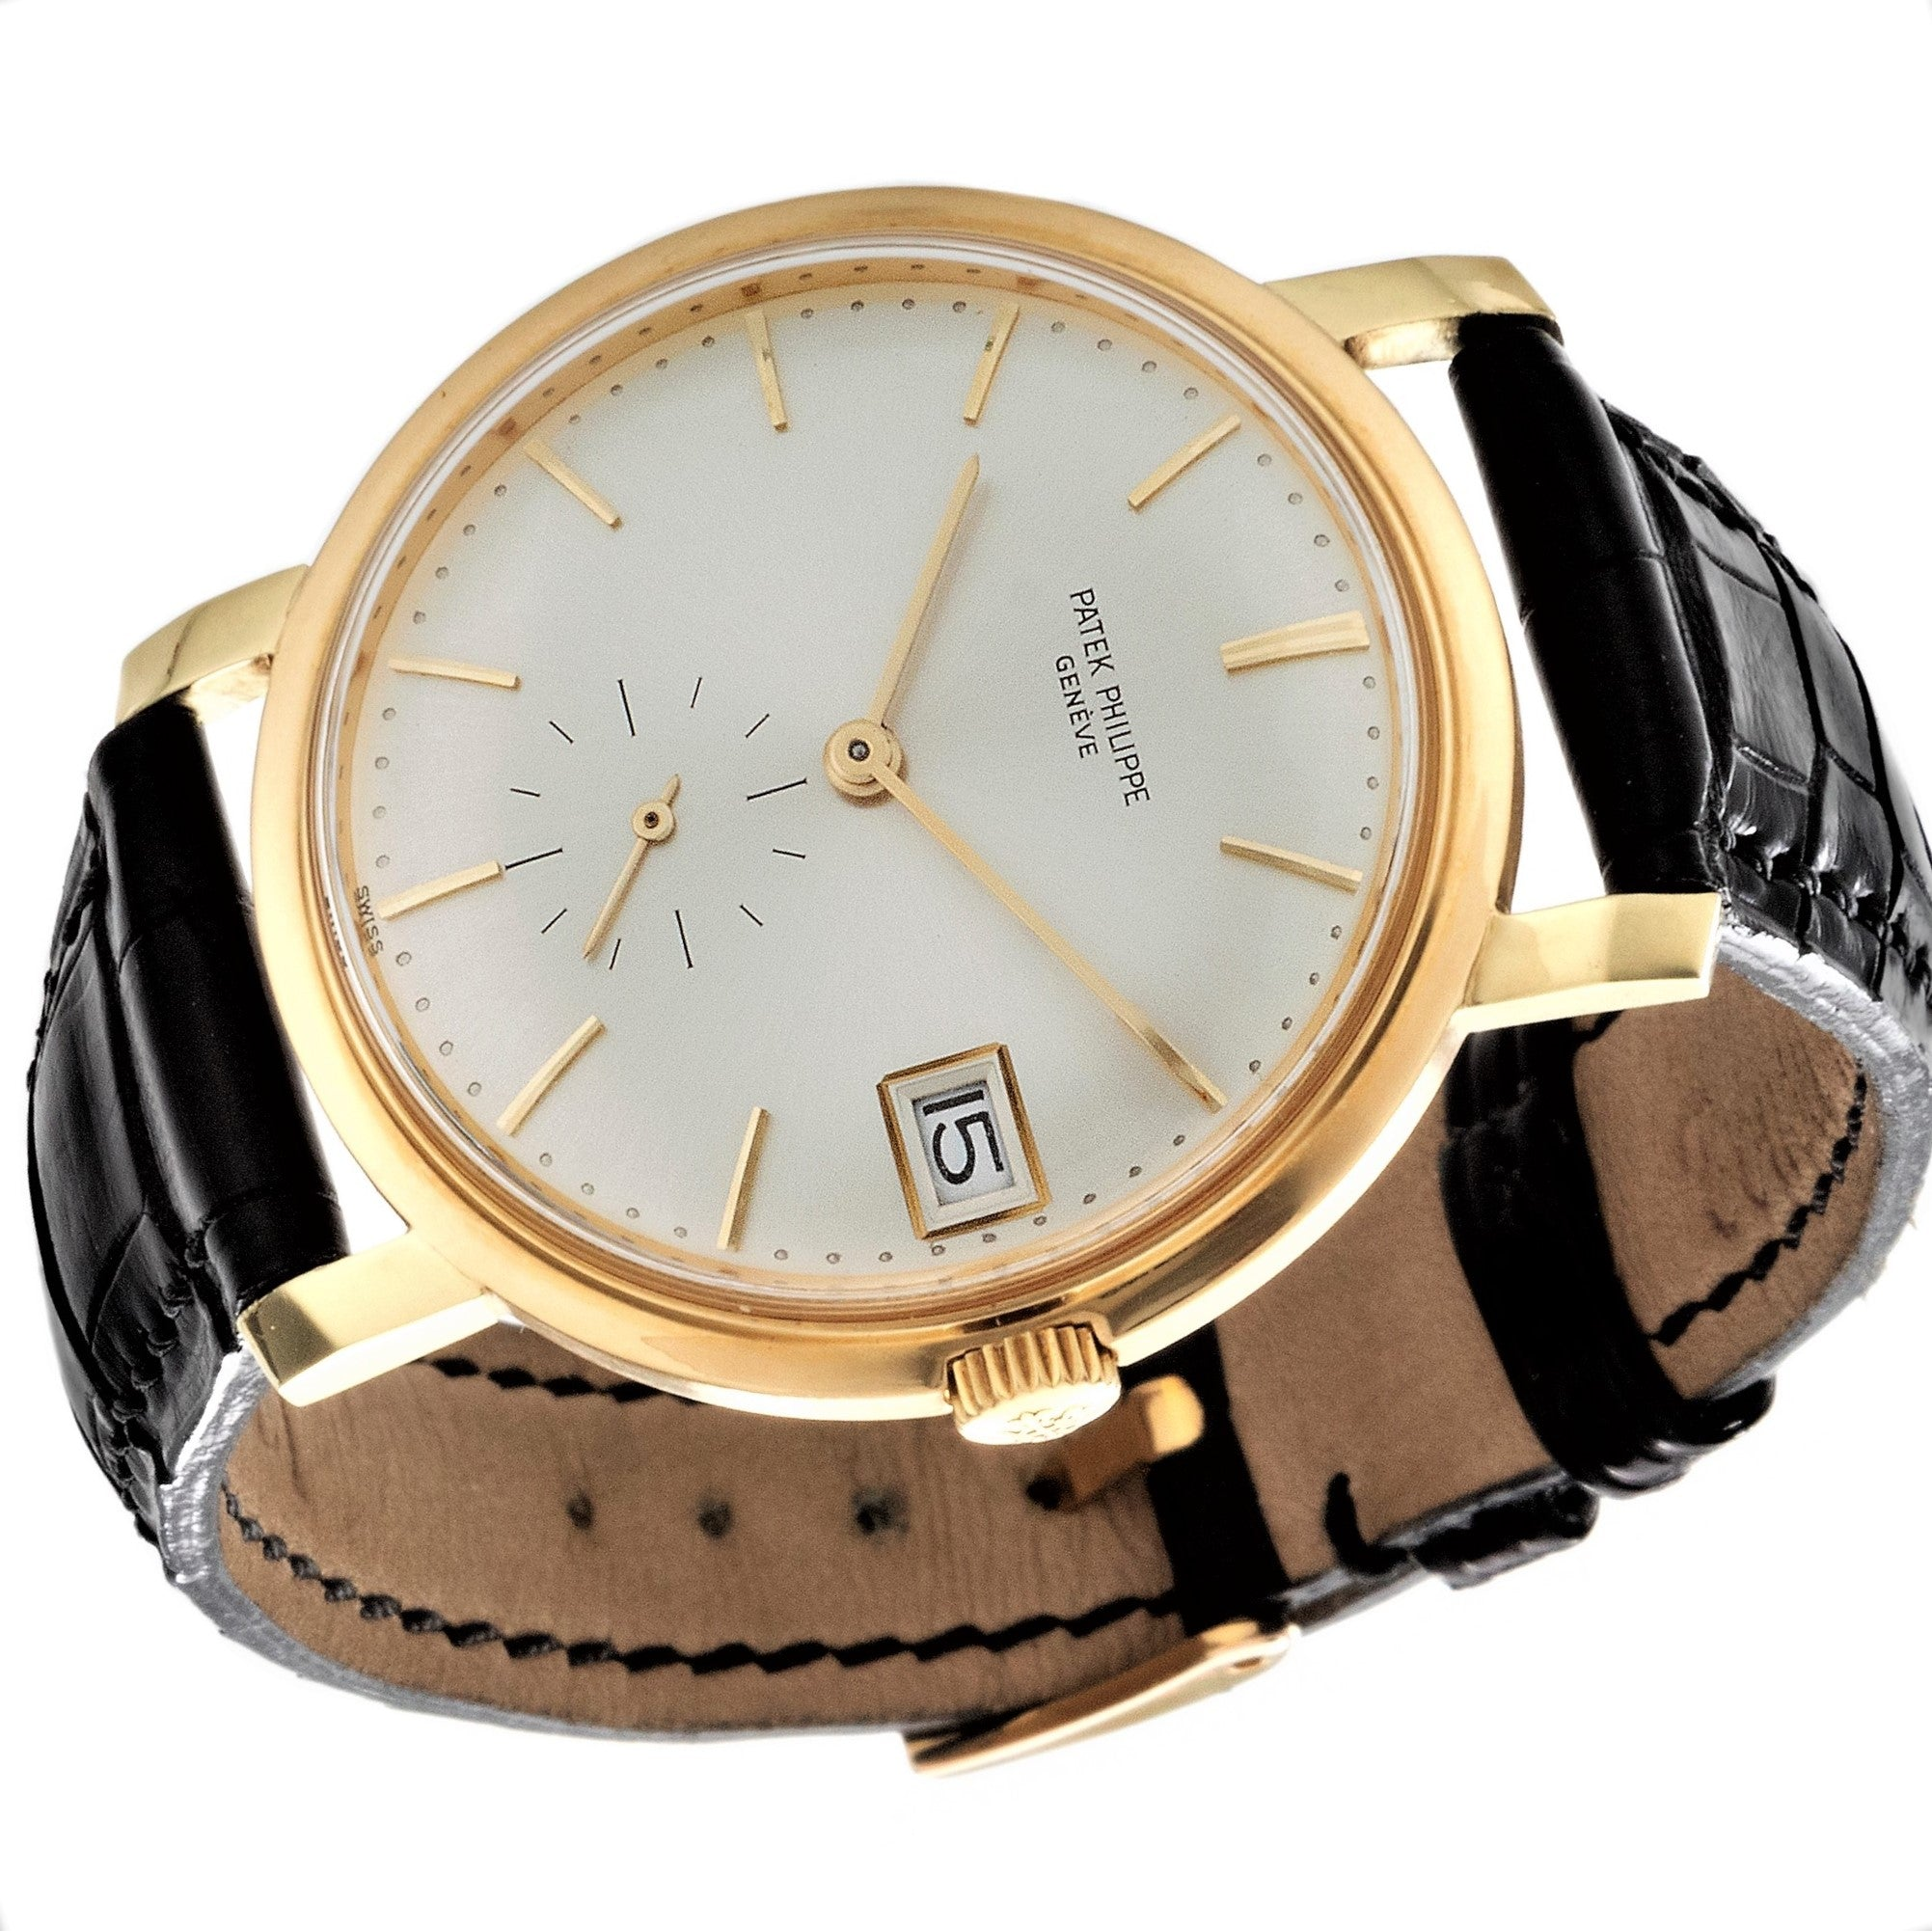 Patek Philippe 3445J Automatic Calatrava Watch